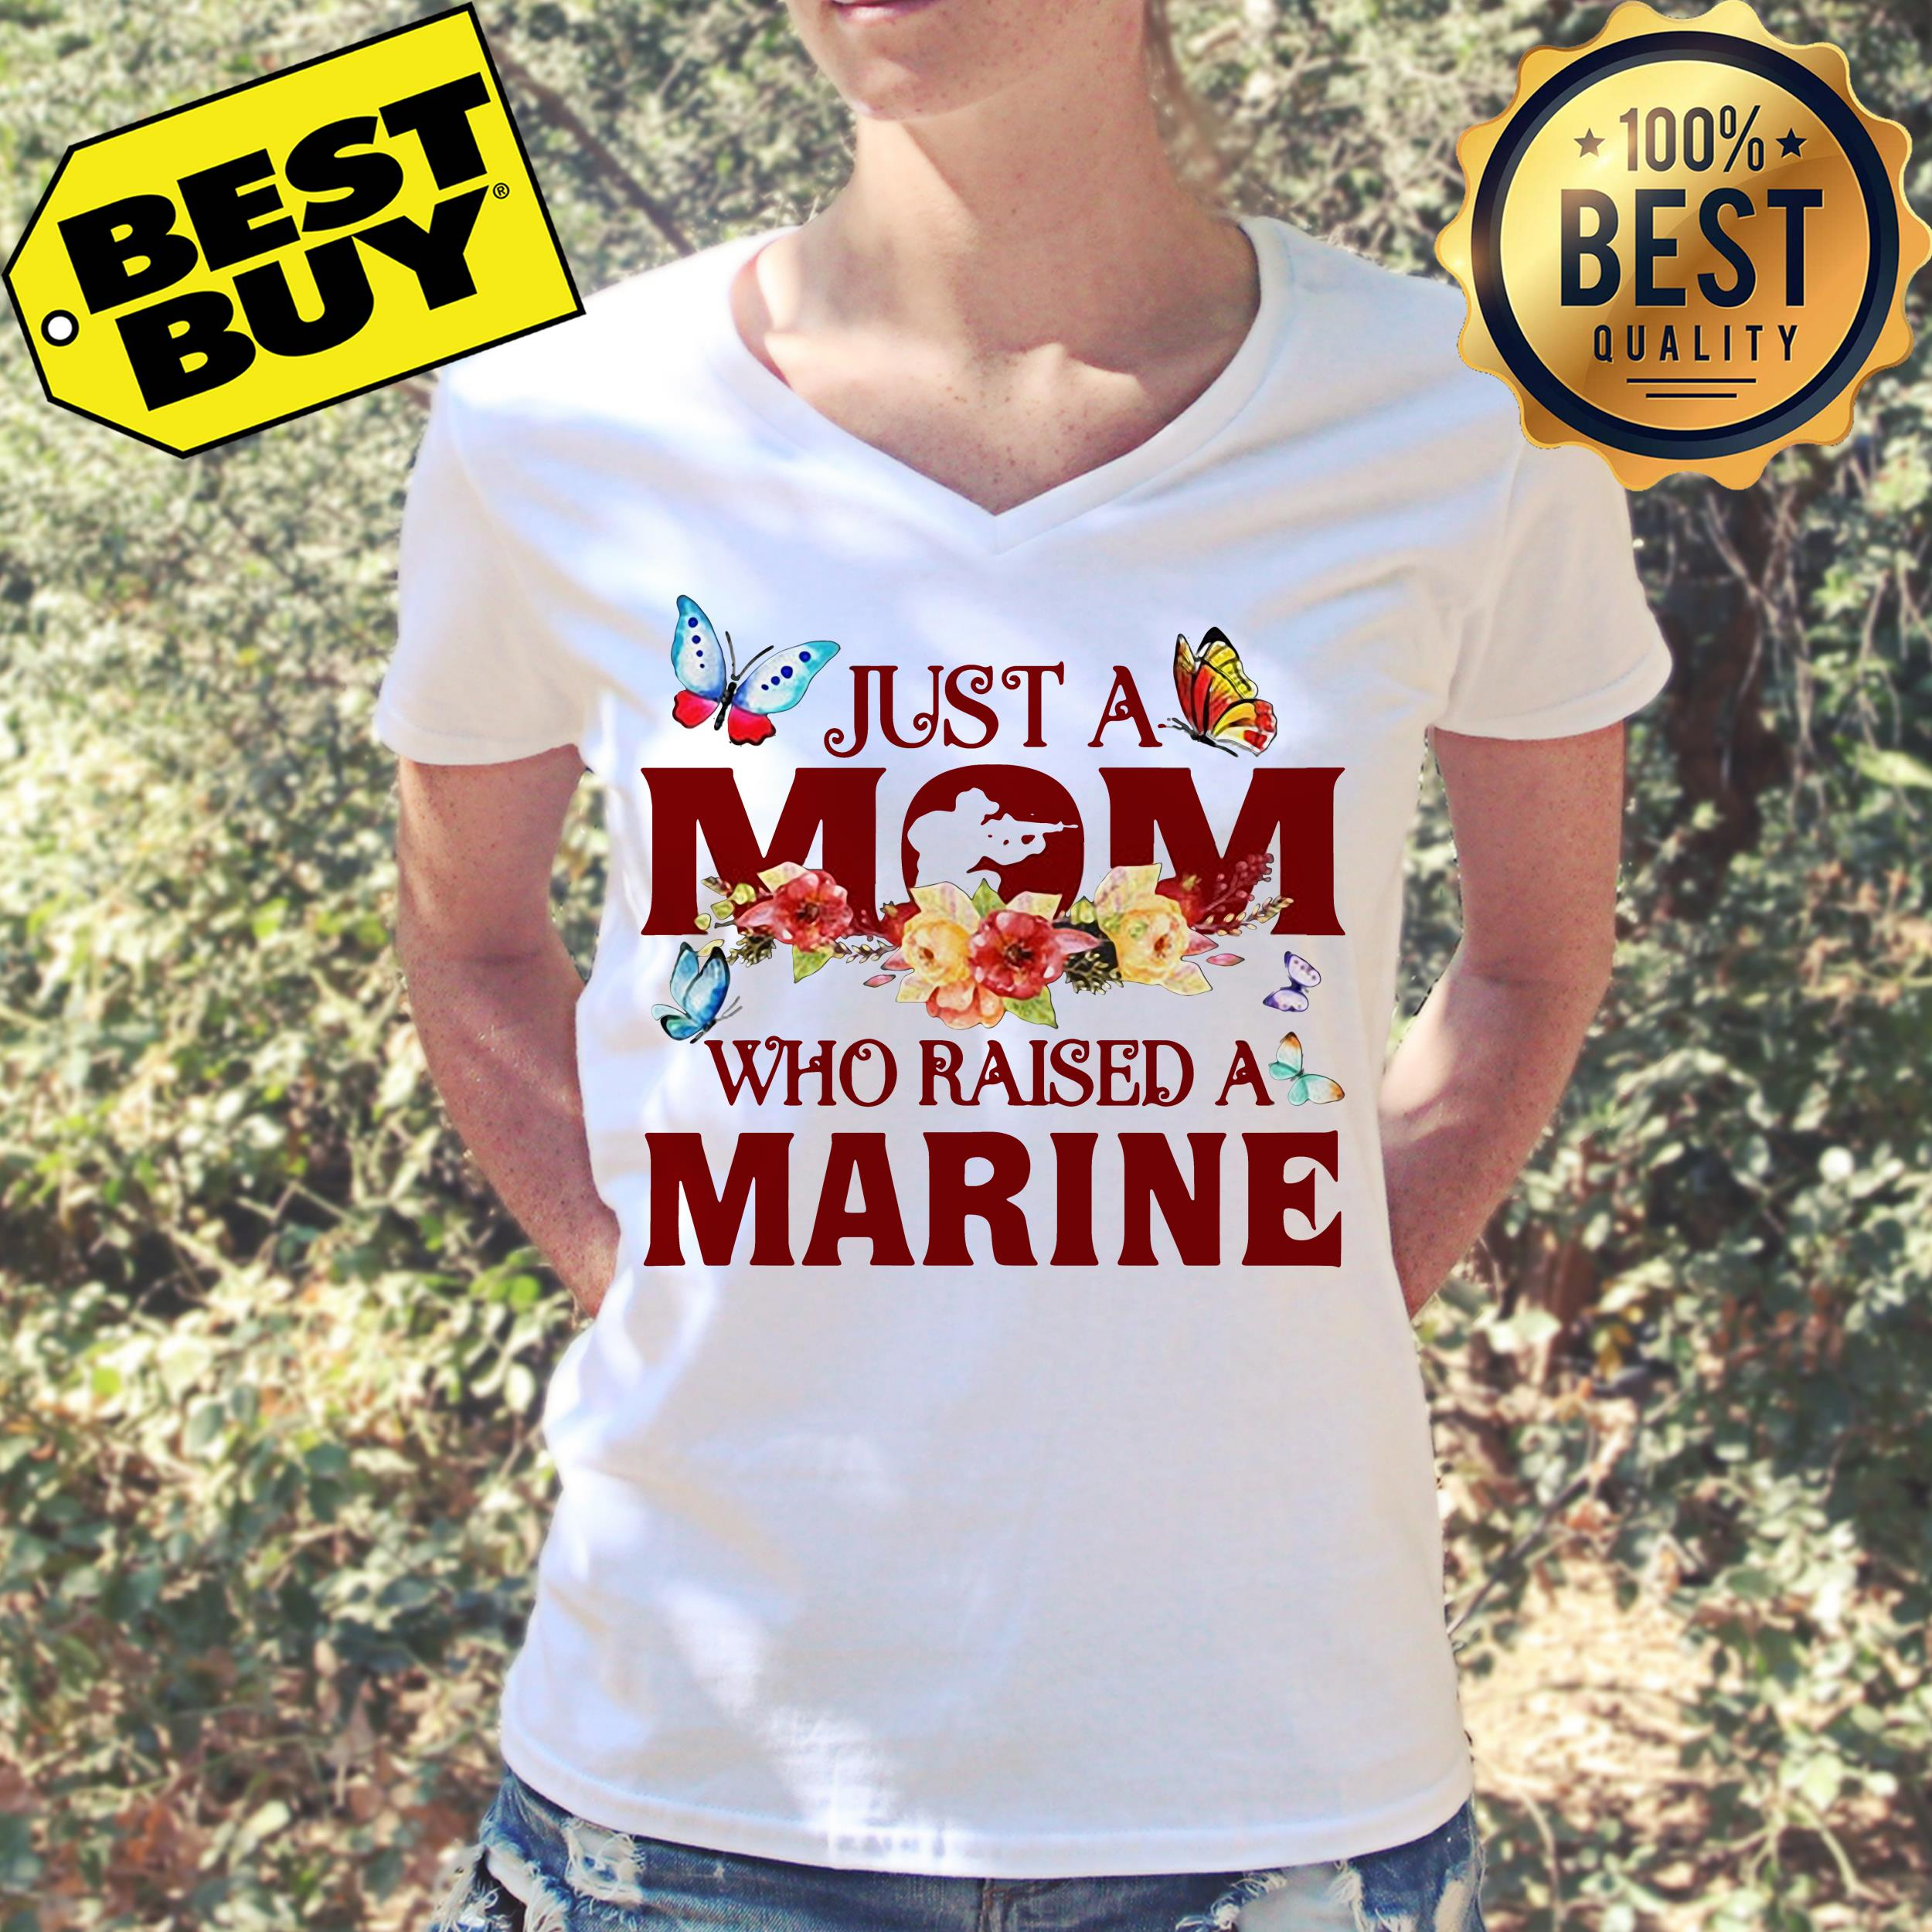 Just a mom who raised a marine v-neck